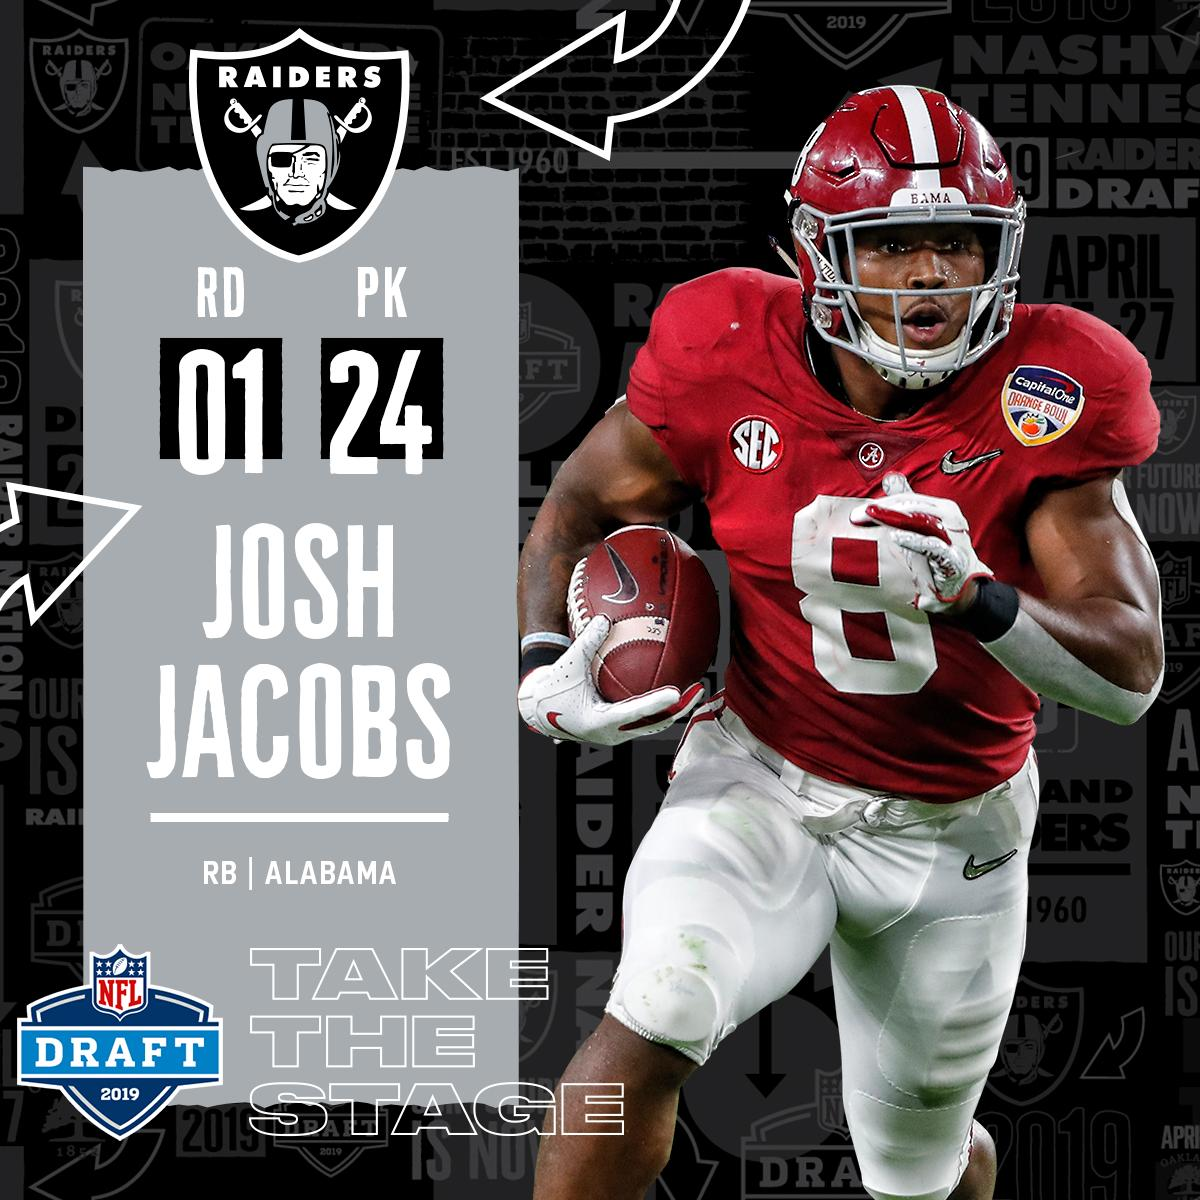 With the #24 overall pick in the 2019 @NFLDraft, the @Raiders select RB Josh Jacobs! #NFLDraft (by @Bose)